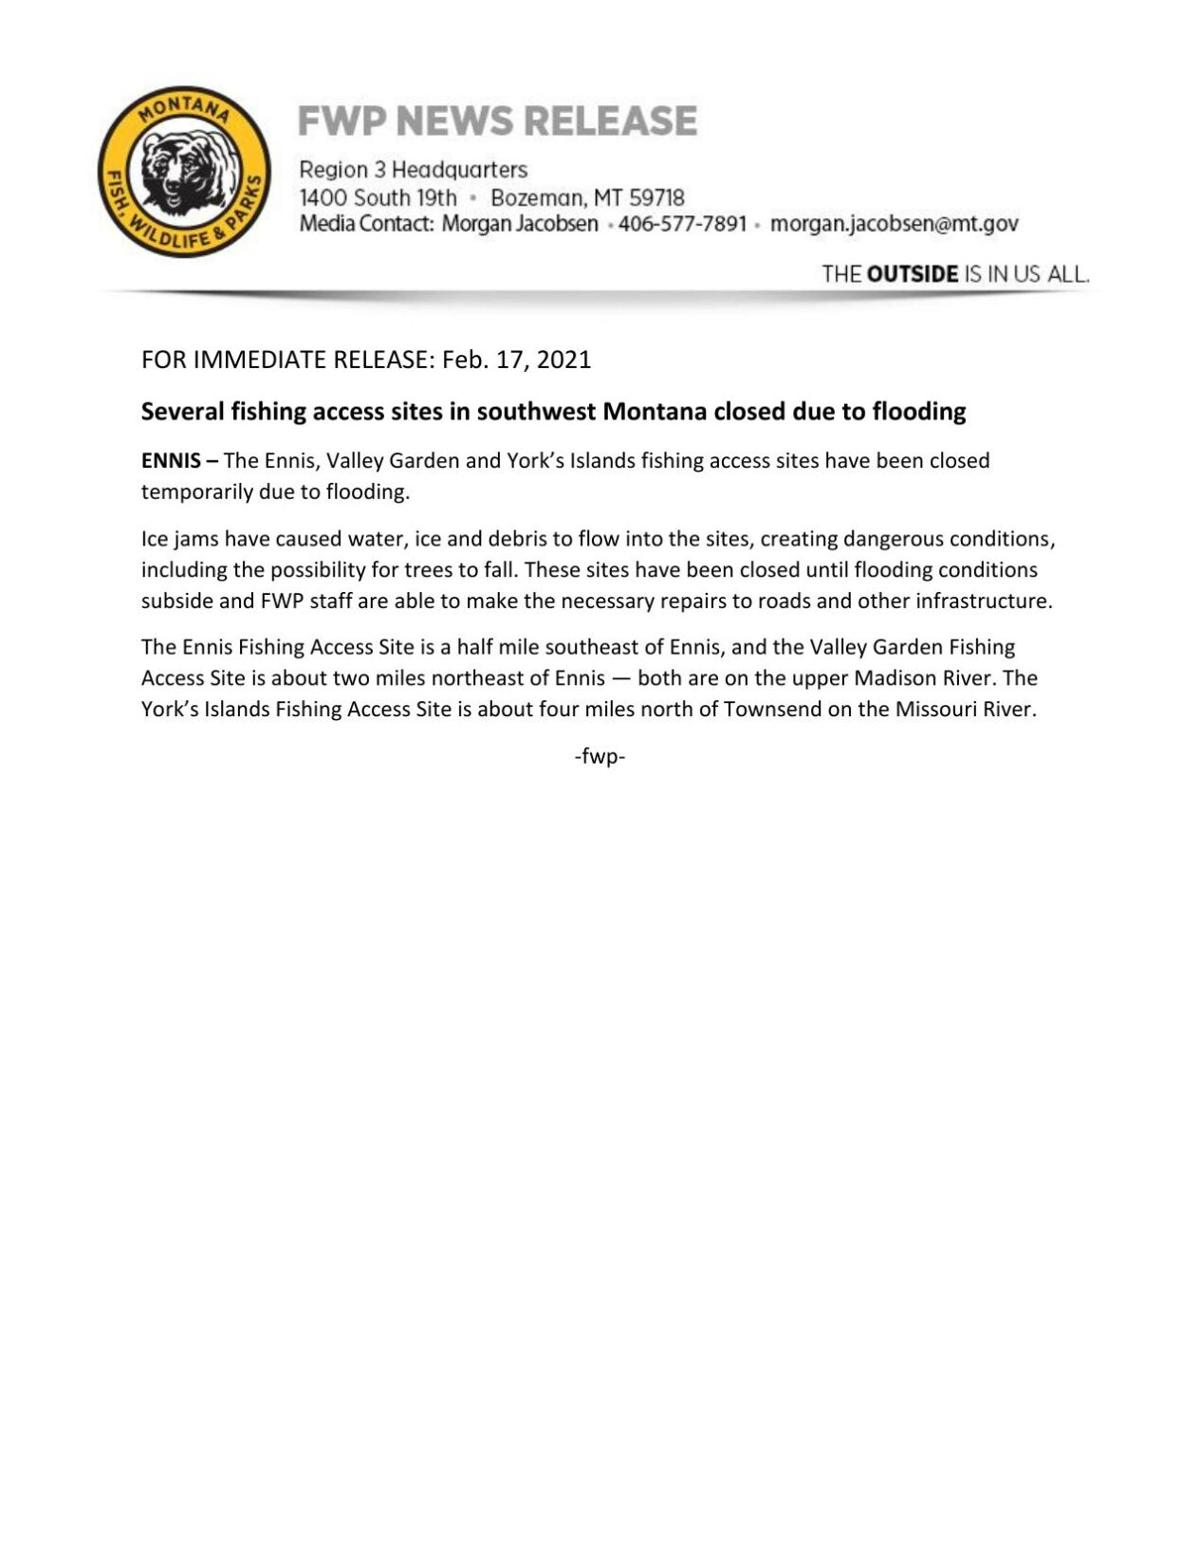 Several fishing access sites in southwest Montana closed due to flooding